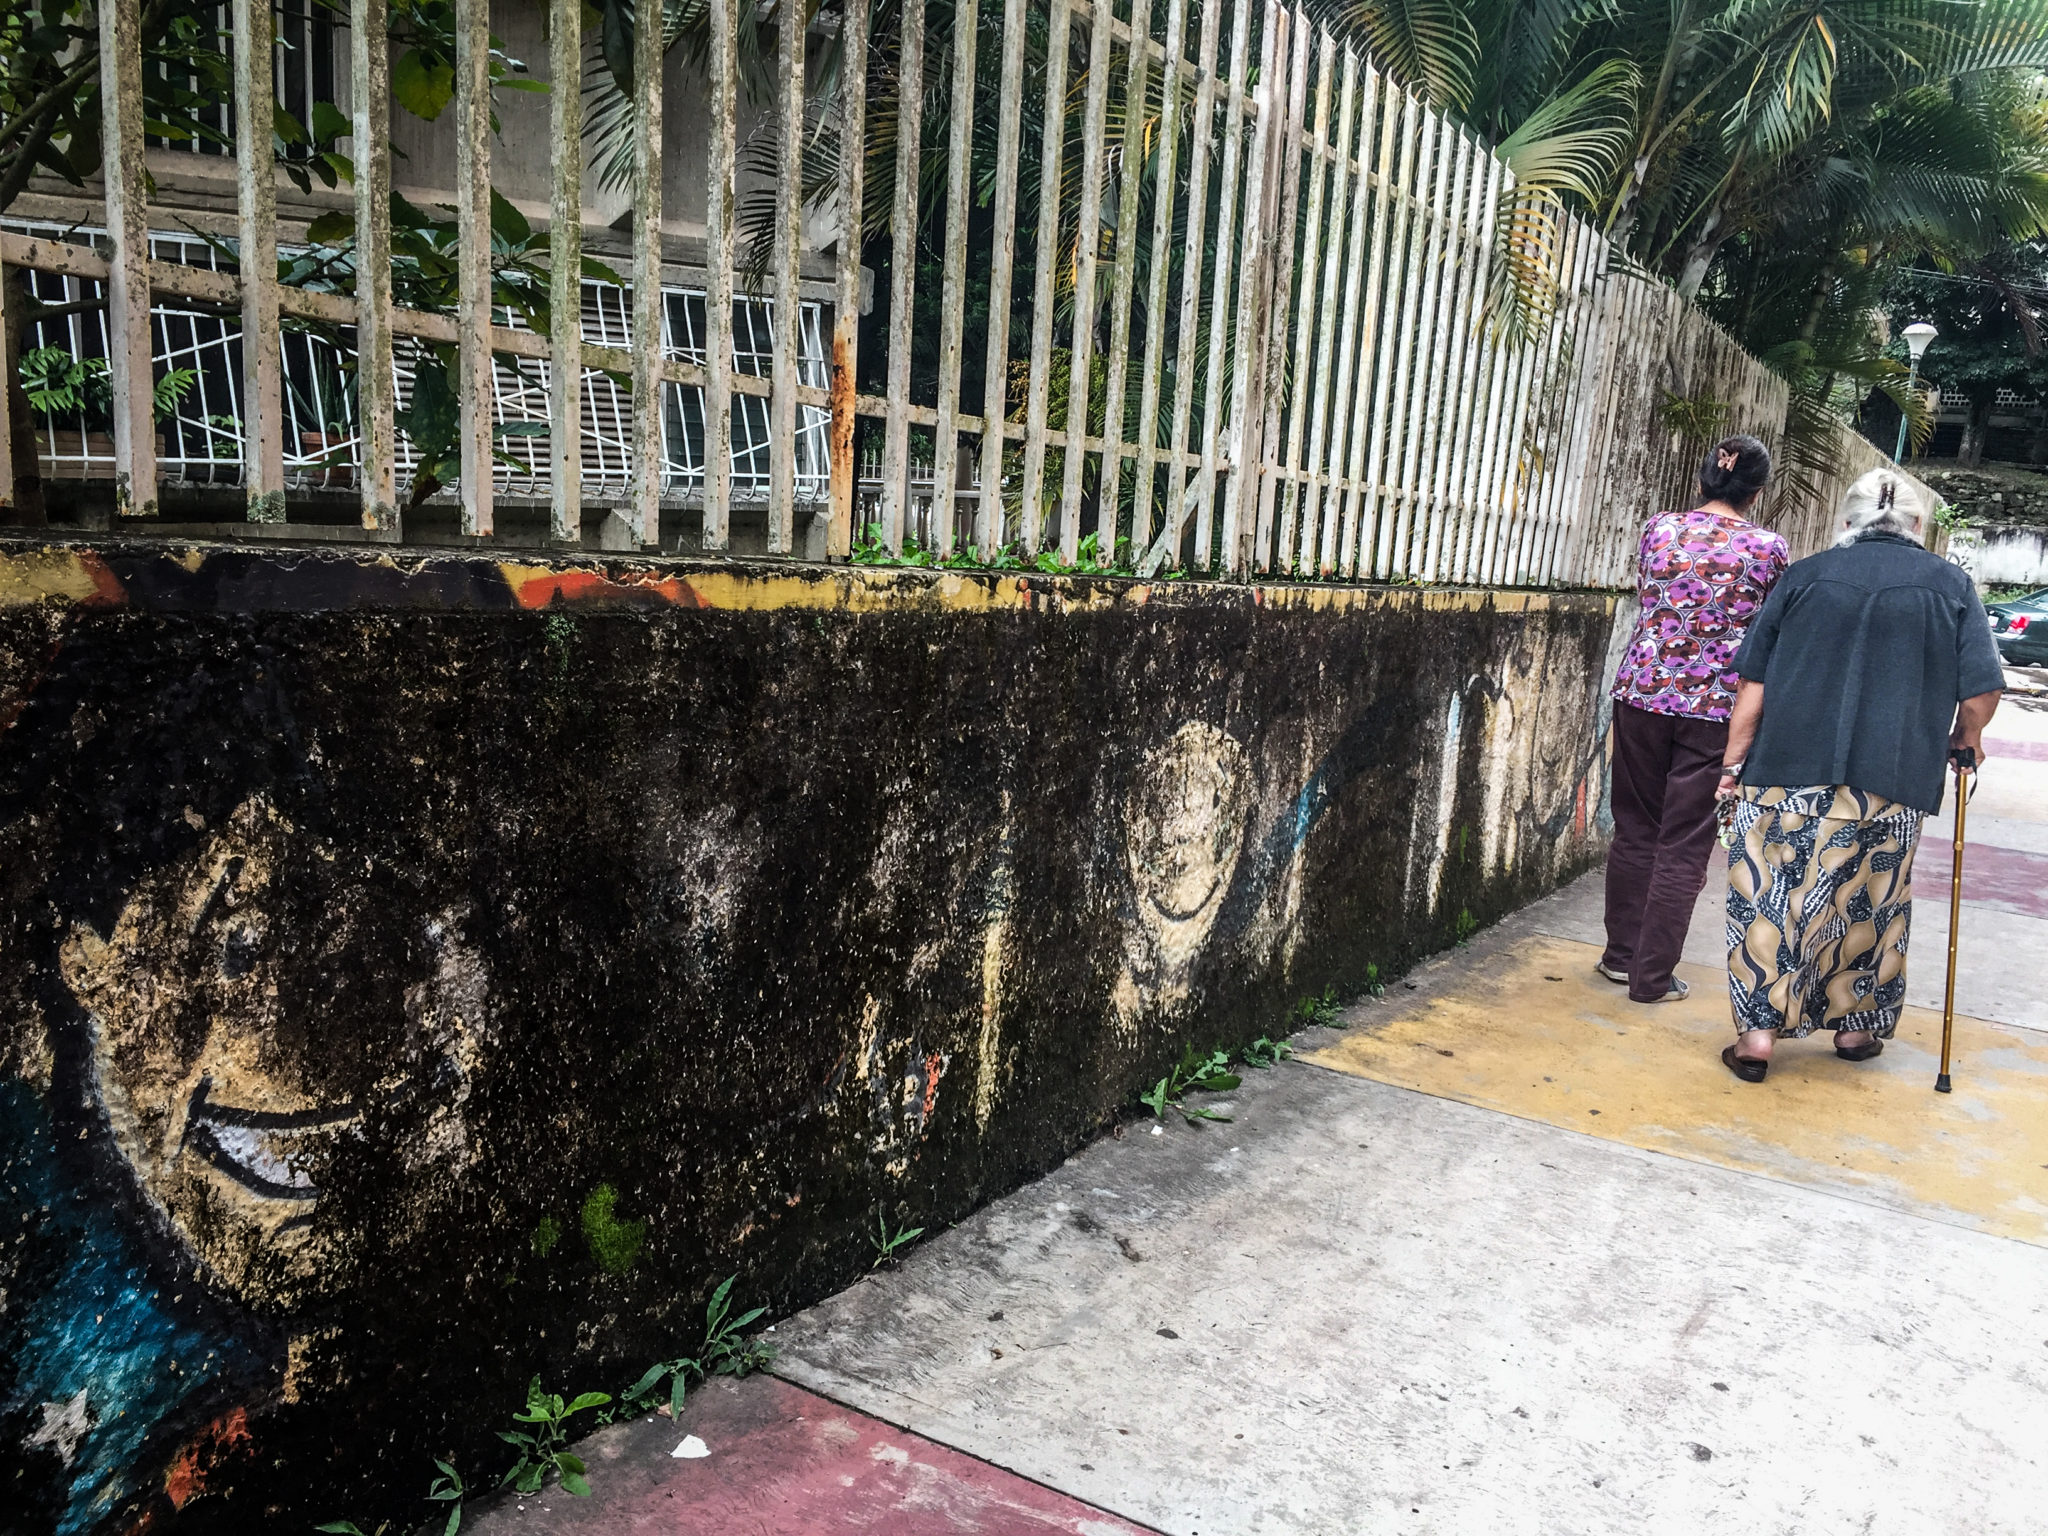 Nights of terror: Attacks and illegal raids on homes in Venezuela